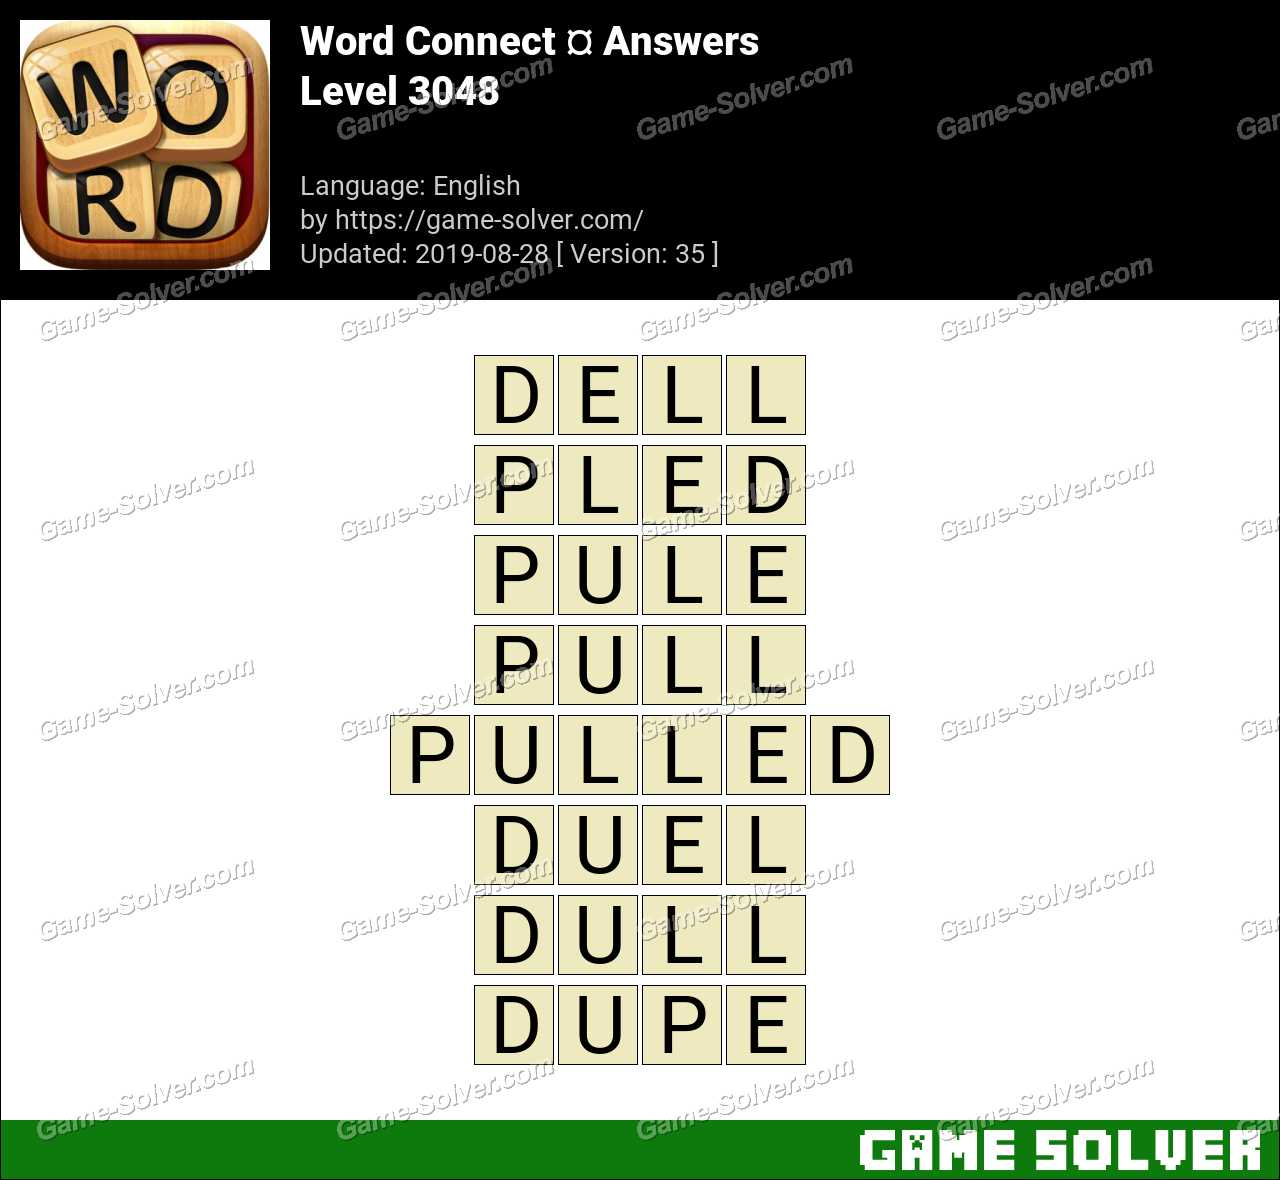 Word Connect Level 3048 Answers